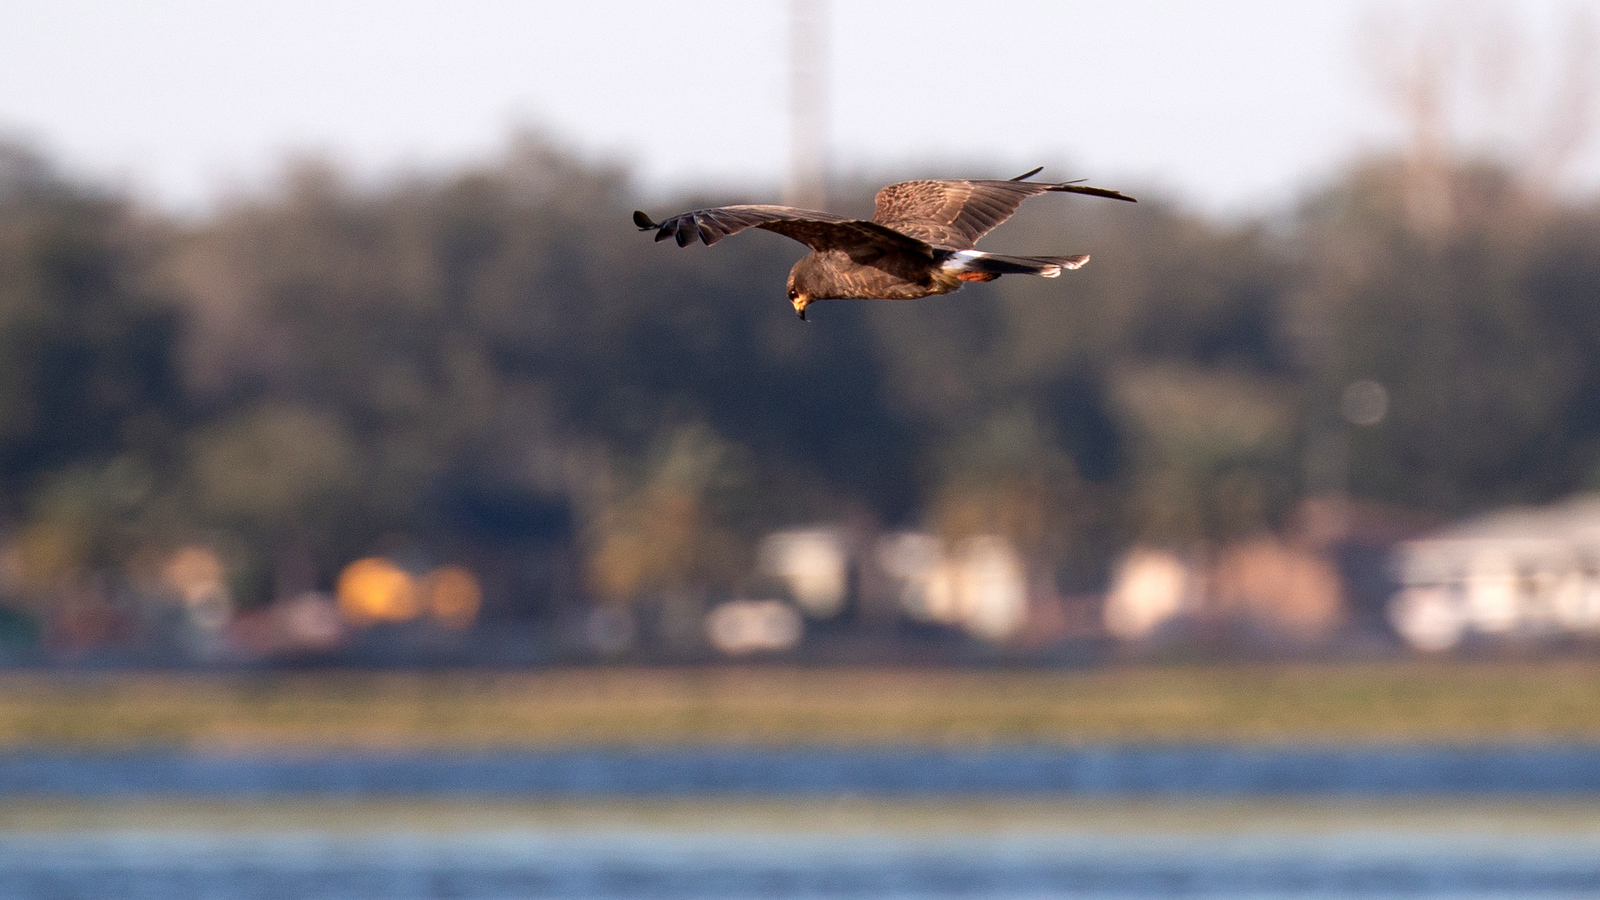 Photograph of a Snail Kite in flight